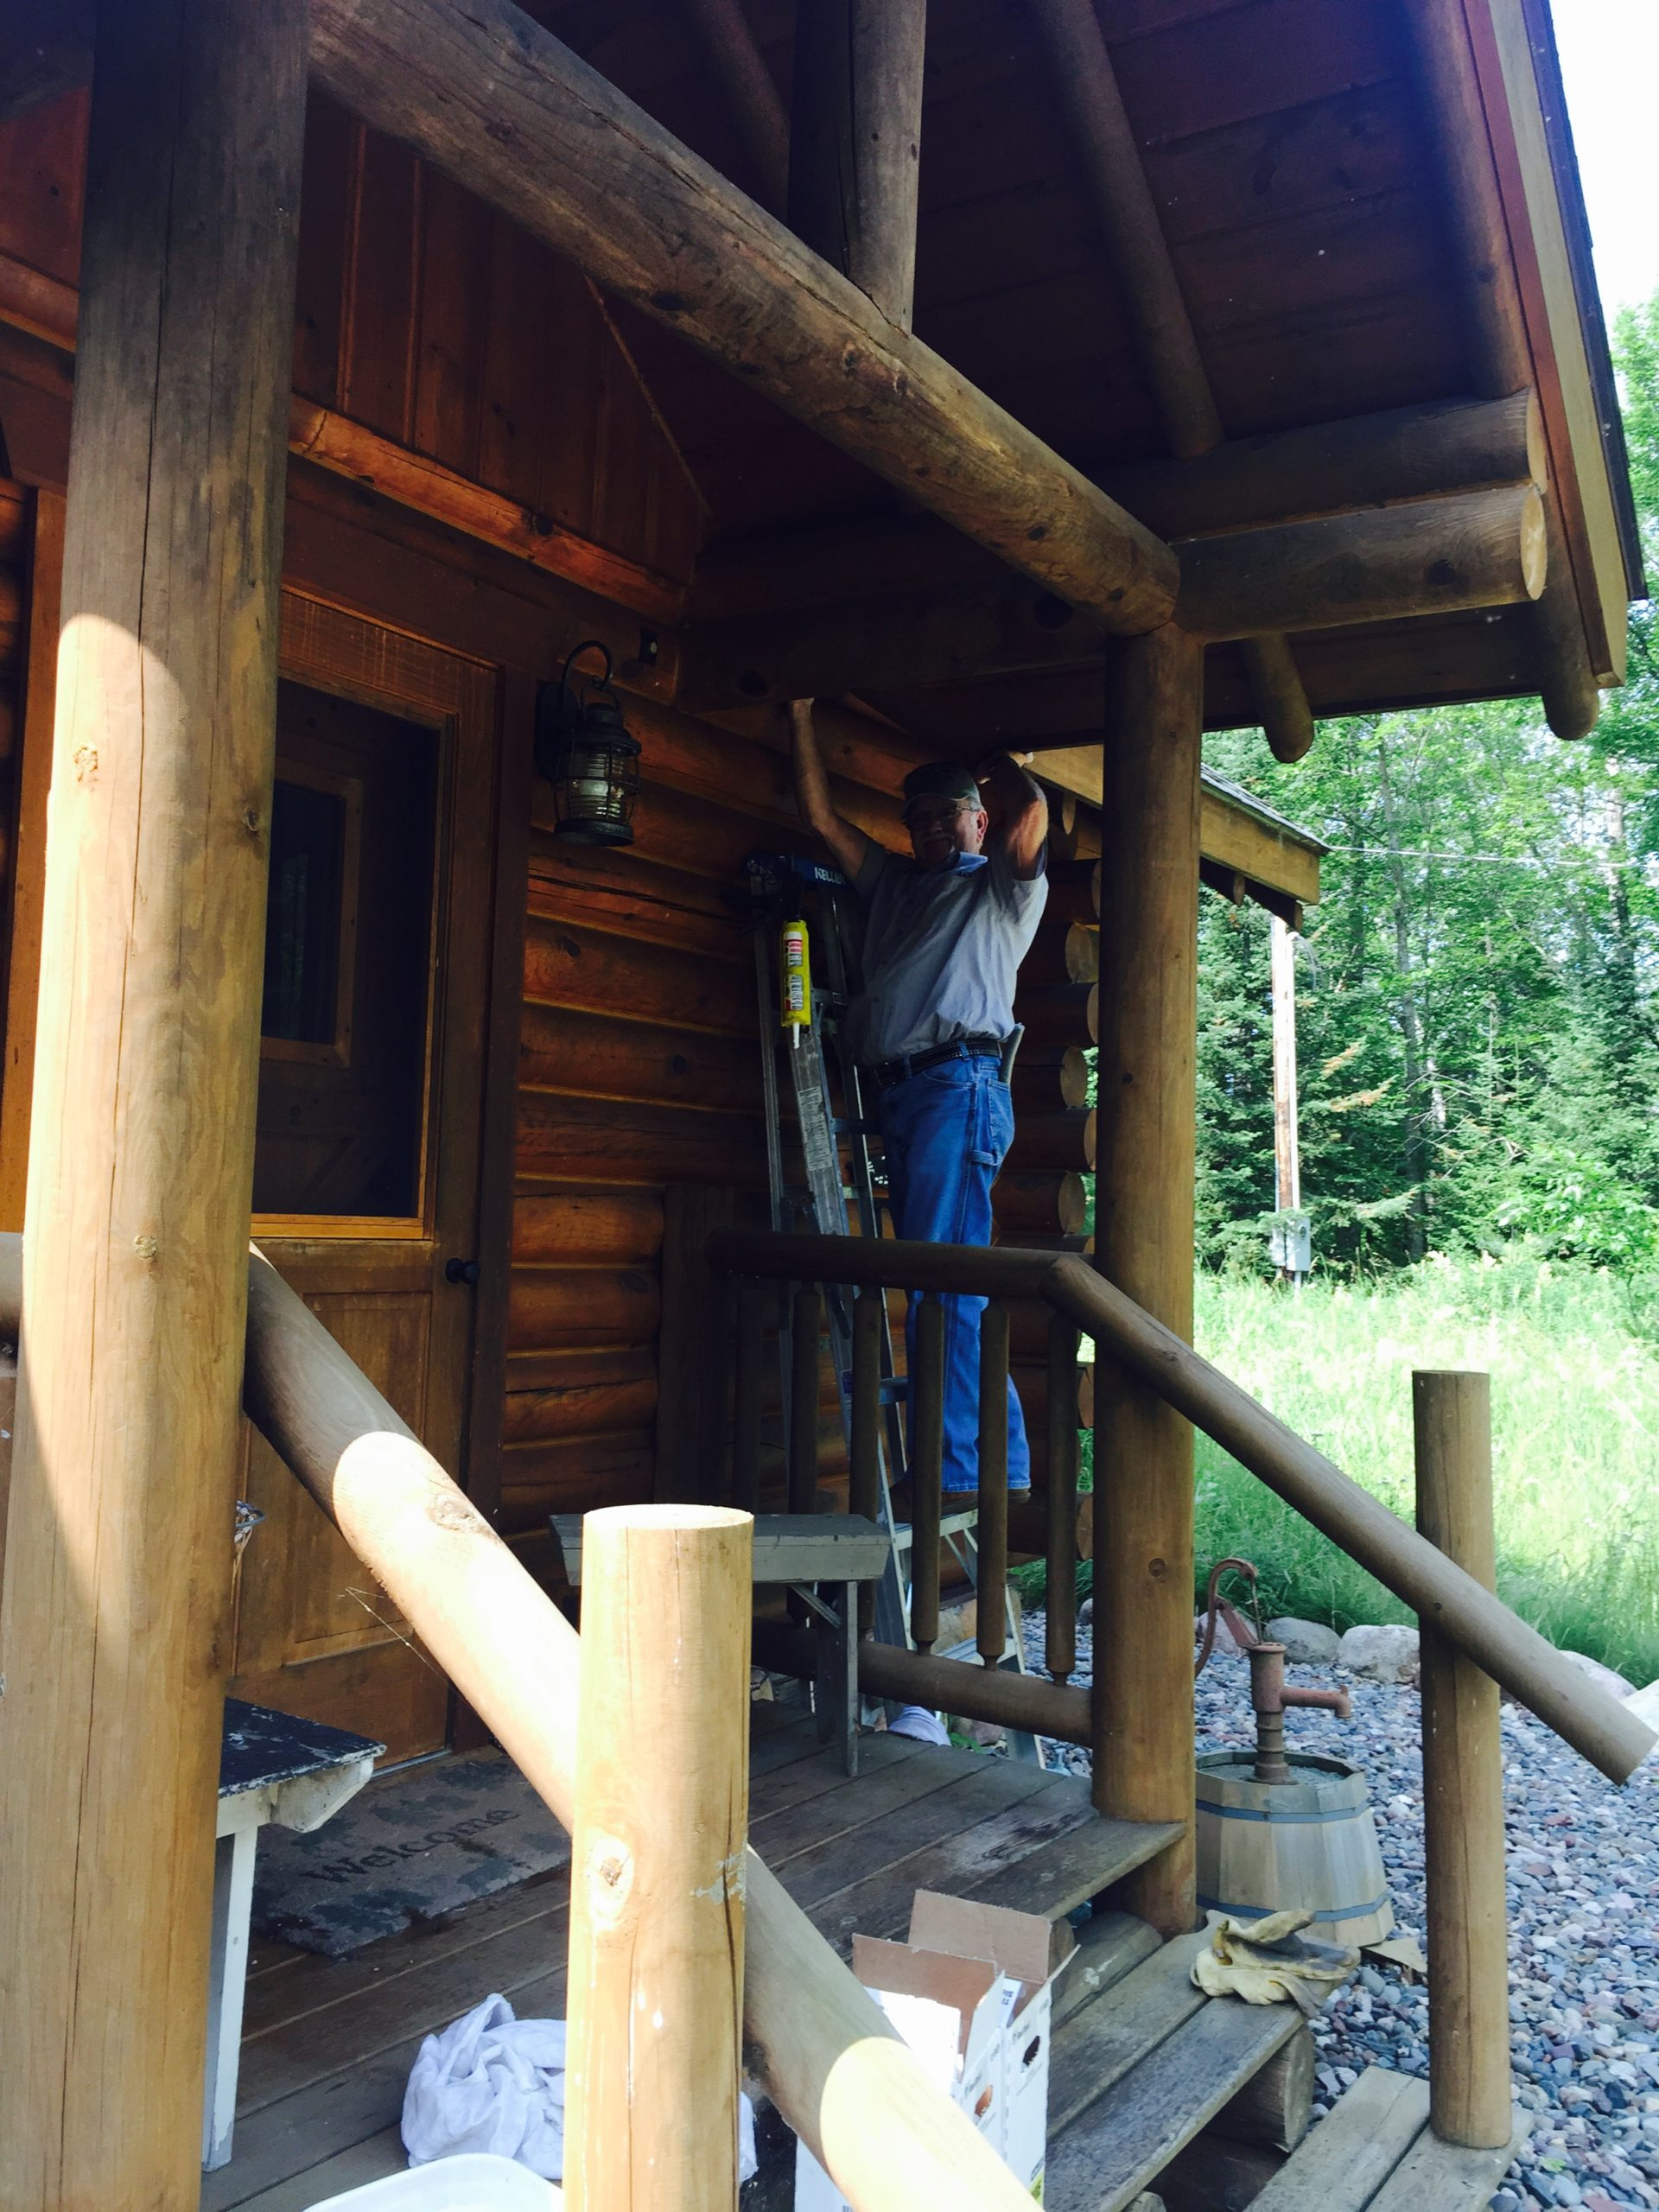 Bat Free technician stands on a ladder to batproof a log cabin.